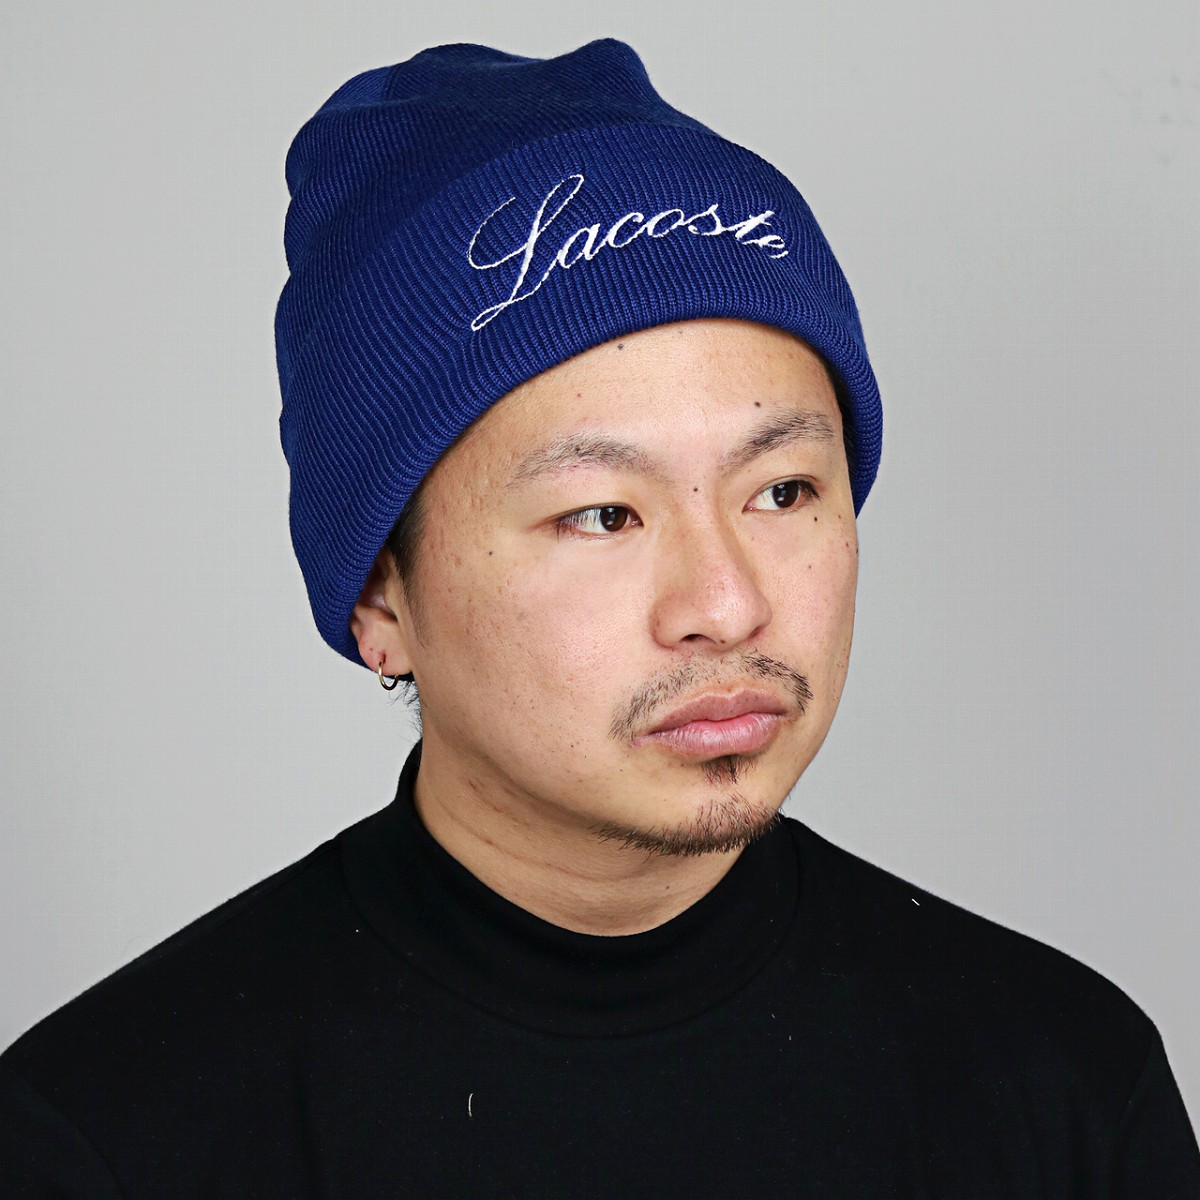 b5fc1d7665c LACOSTE knit caps Lacoste cursive logo wool NetWatch autumn-winter blue